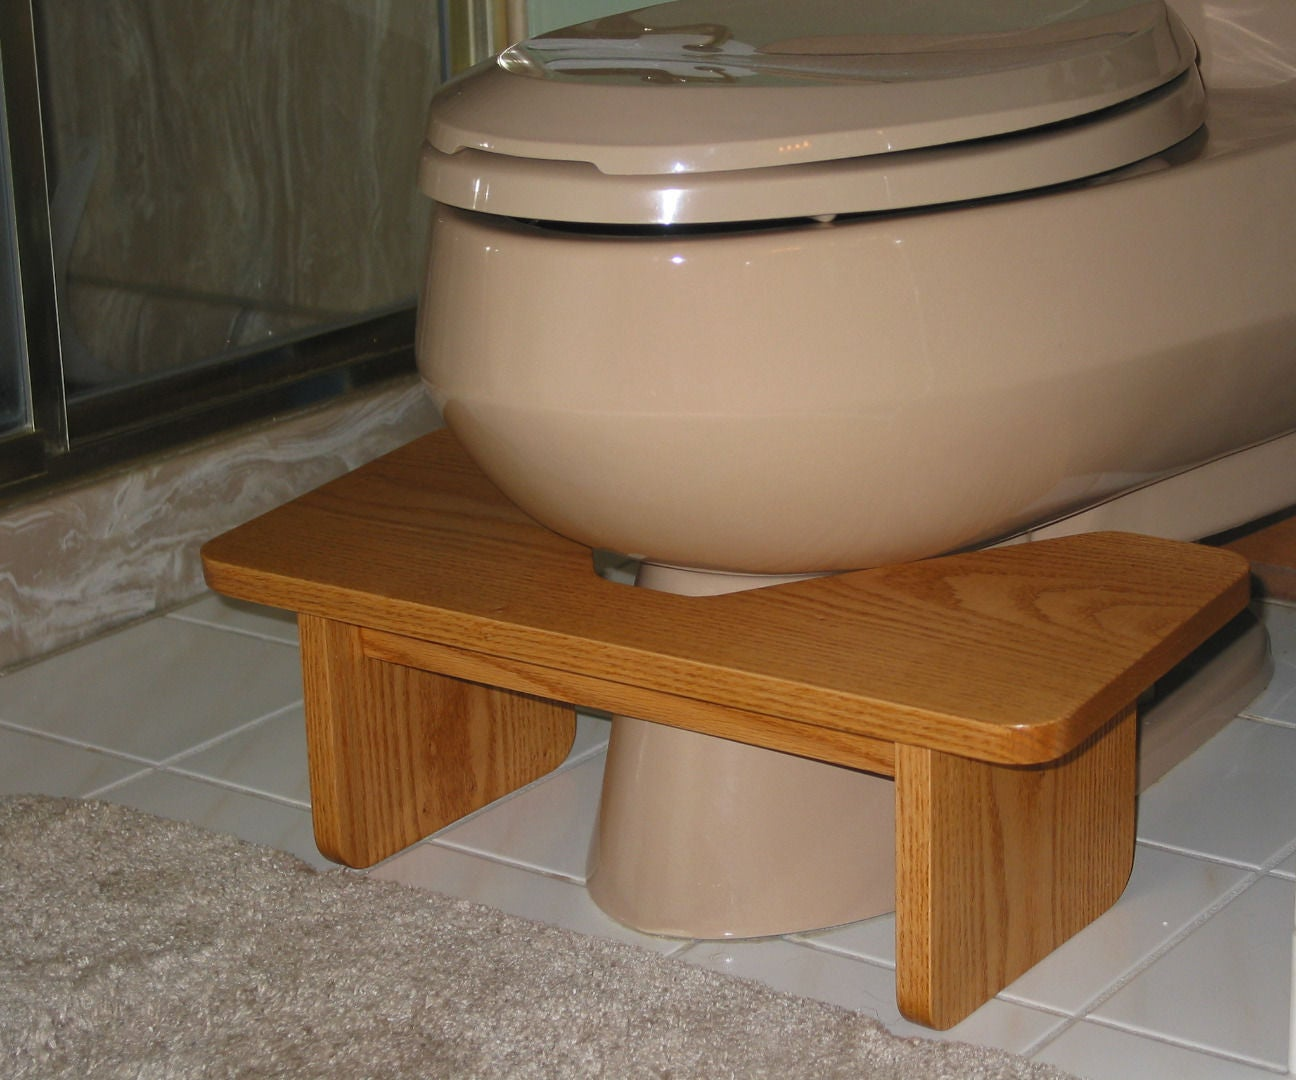 This Footstool Is a Better Way to Use the Toilet: 4 Steps (with ...